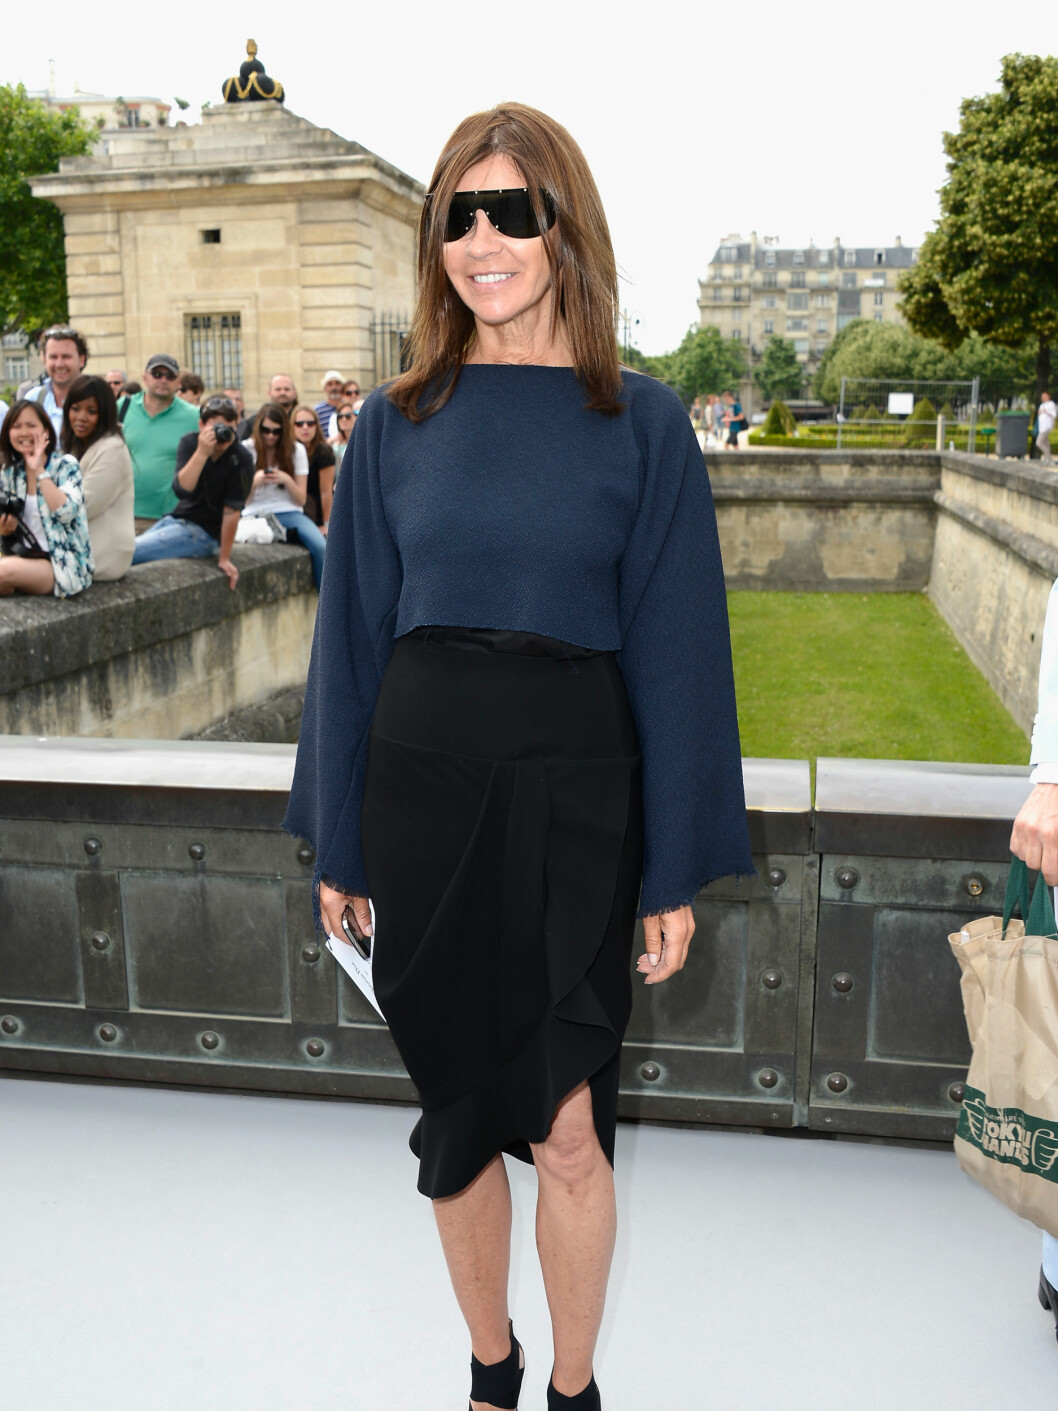 PARIS, FRANCE - JULY 01:  Carine Roitfeld attends the Christian Dior show as part of Paris Fashion Week Haute-Couture Fall/Winter 2013-2014 at Hotel Des Invalides on July 1, 2013 in Paris, France.  (Photo by Pascal Le Segretain/Getty Images) Foto: All Over Press